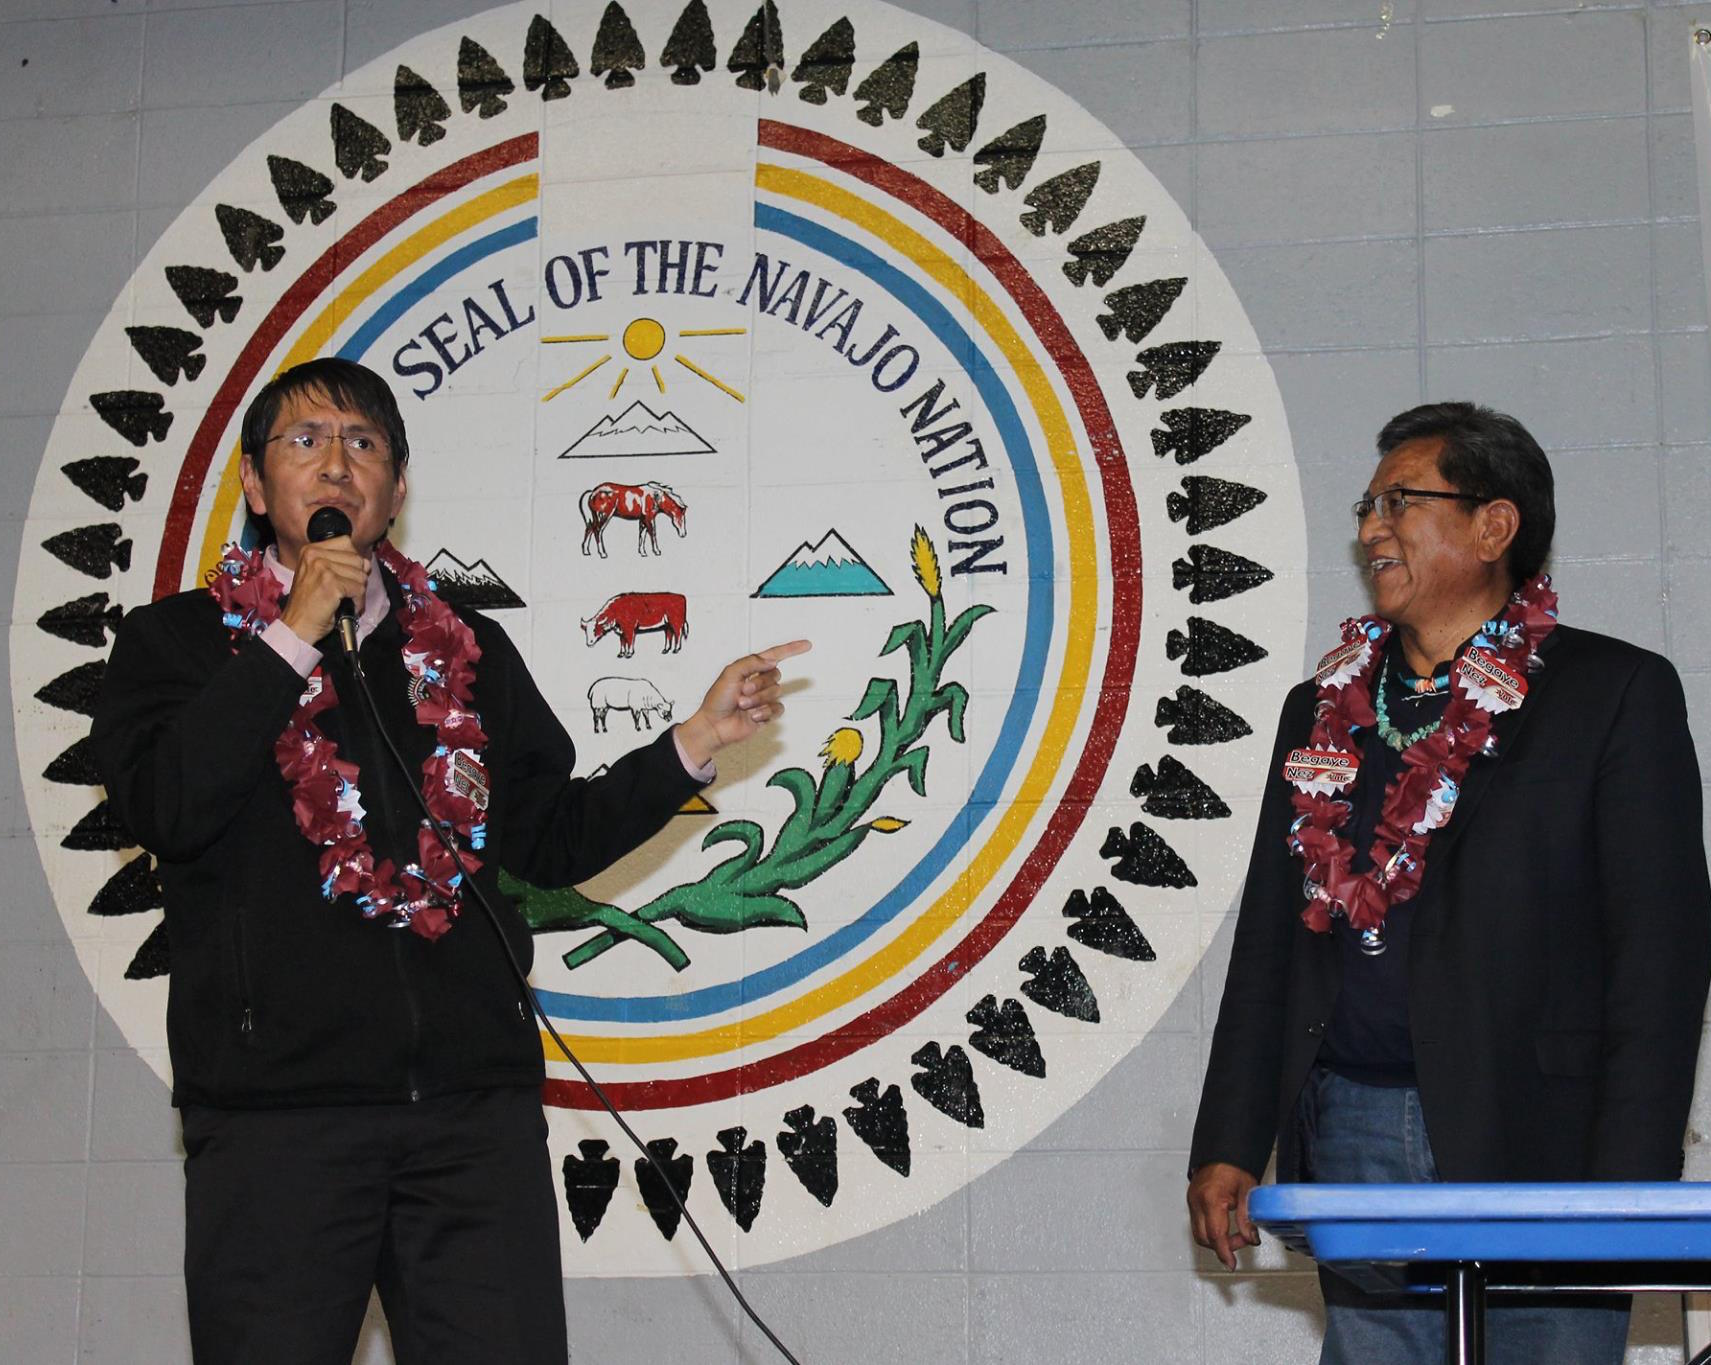 Incoming leader of Navajo Nation stresses importance of youth